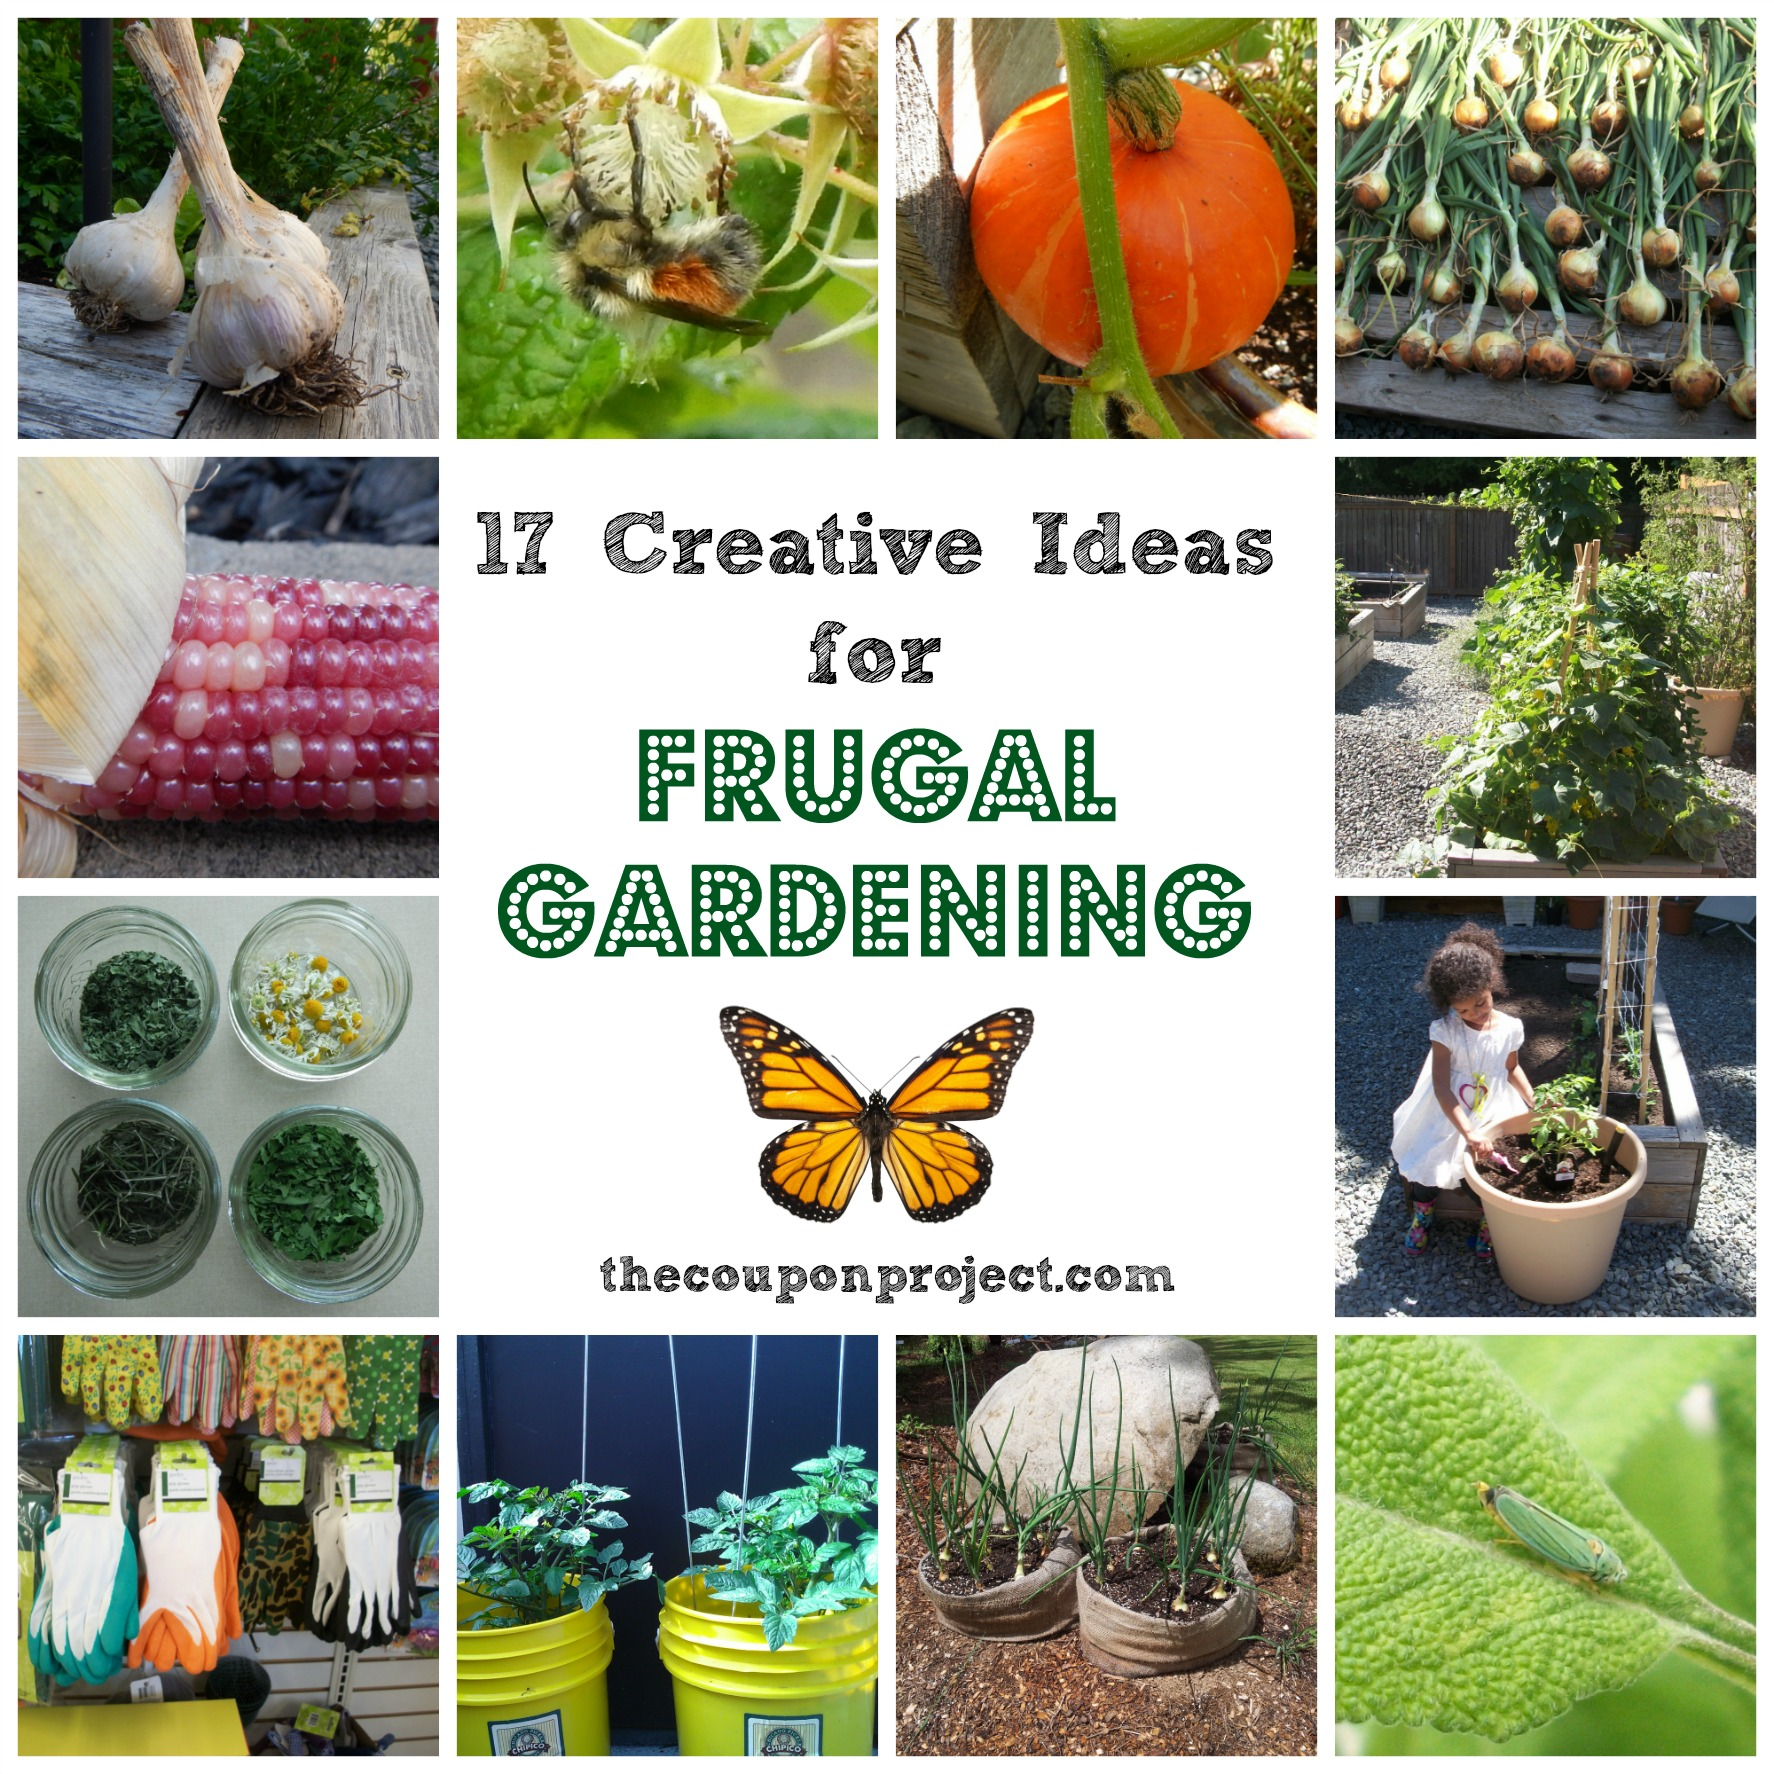 17 Creative Ideas For Frugal Gardening | The Coupon Project